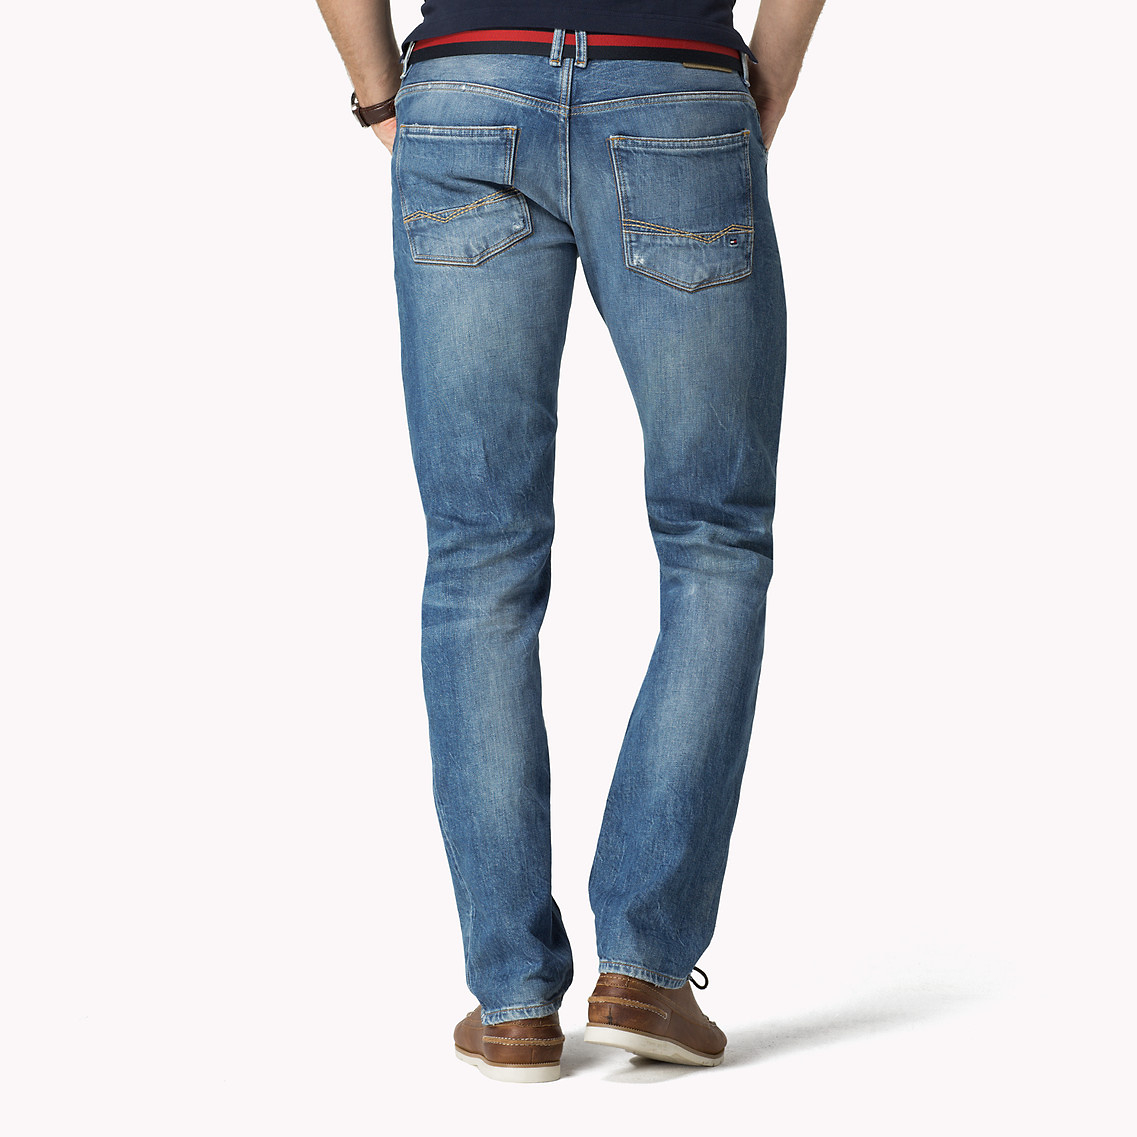 b2265361 Tommy Hilfiger Slim Fit Jeans in Blue for Men - Lyst